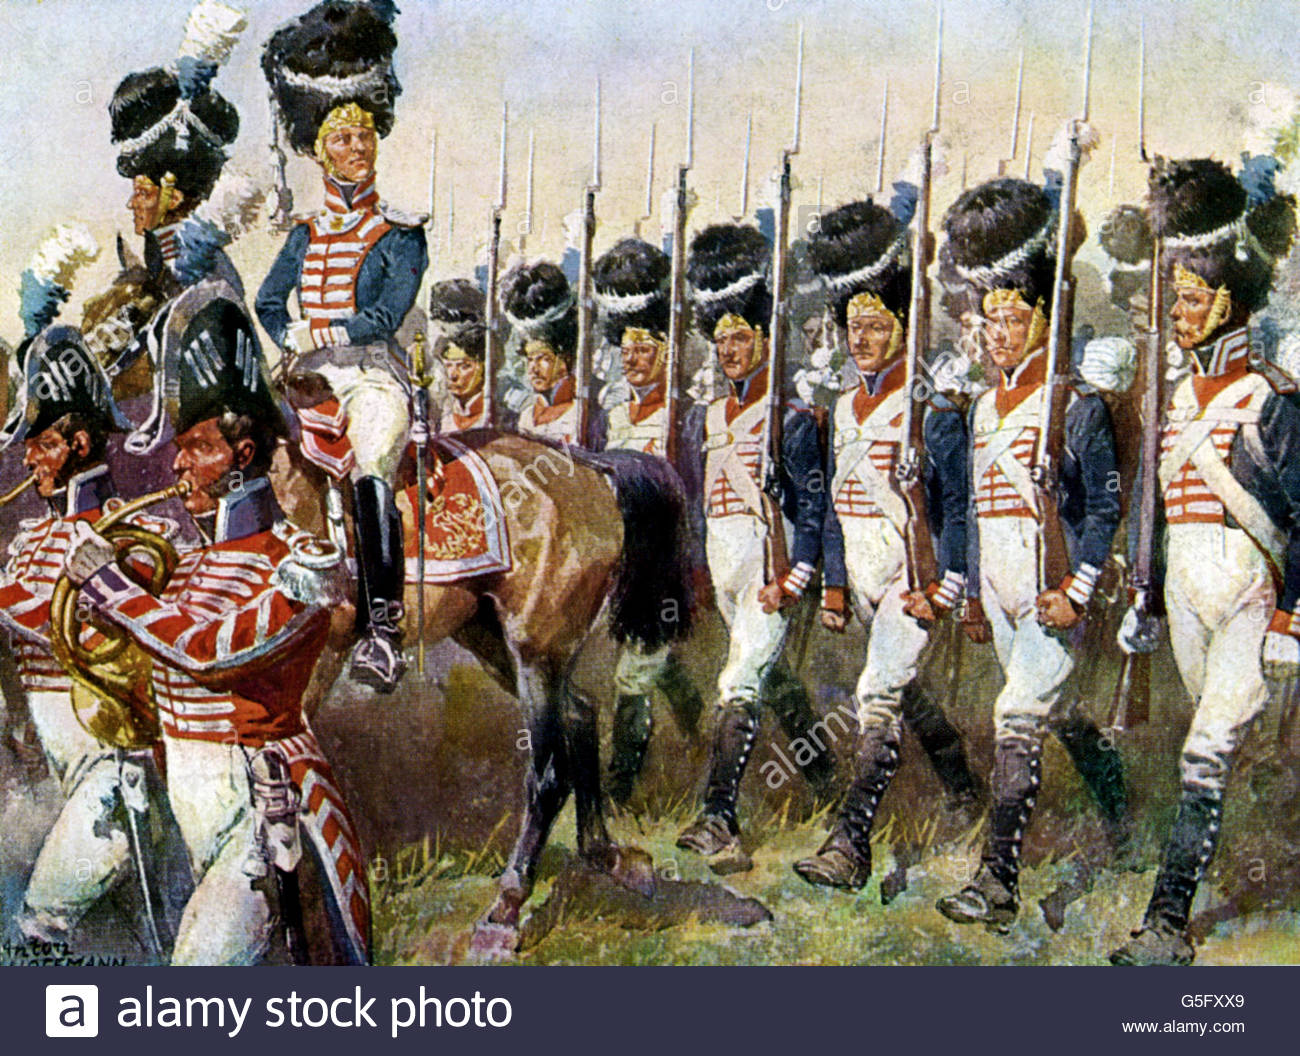 military, Germany, Bavaria, parade of the Grenadier Guard Regiment, 1814, Artist's Copyright must also be cleared - Stock Image